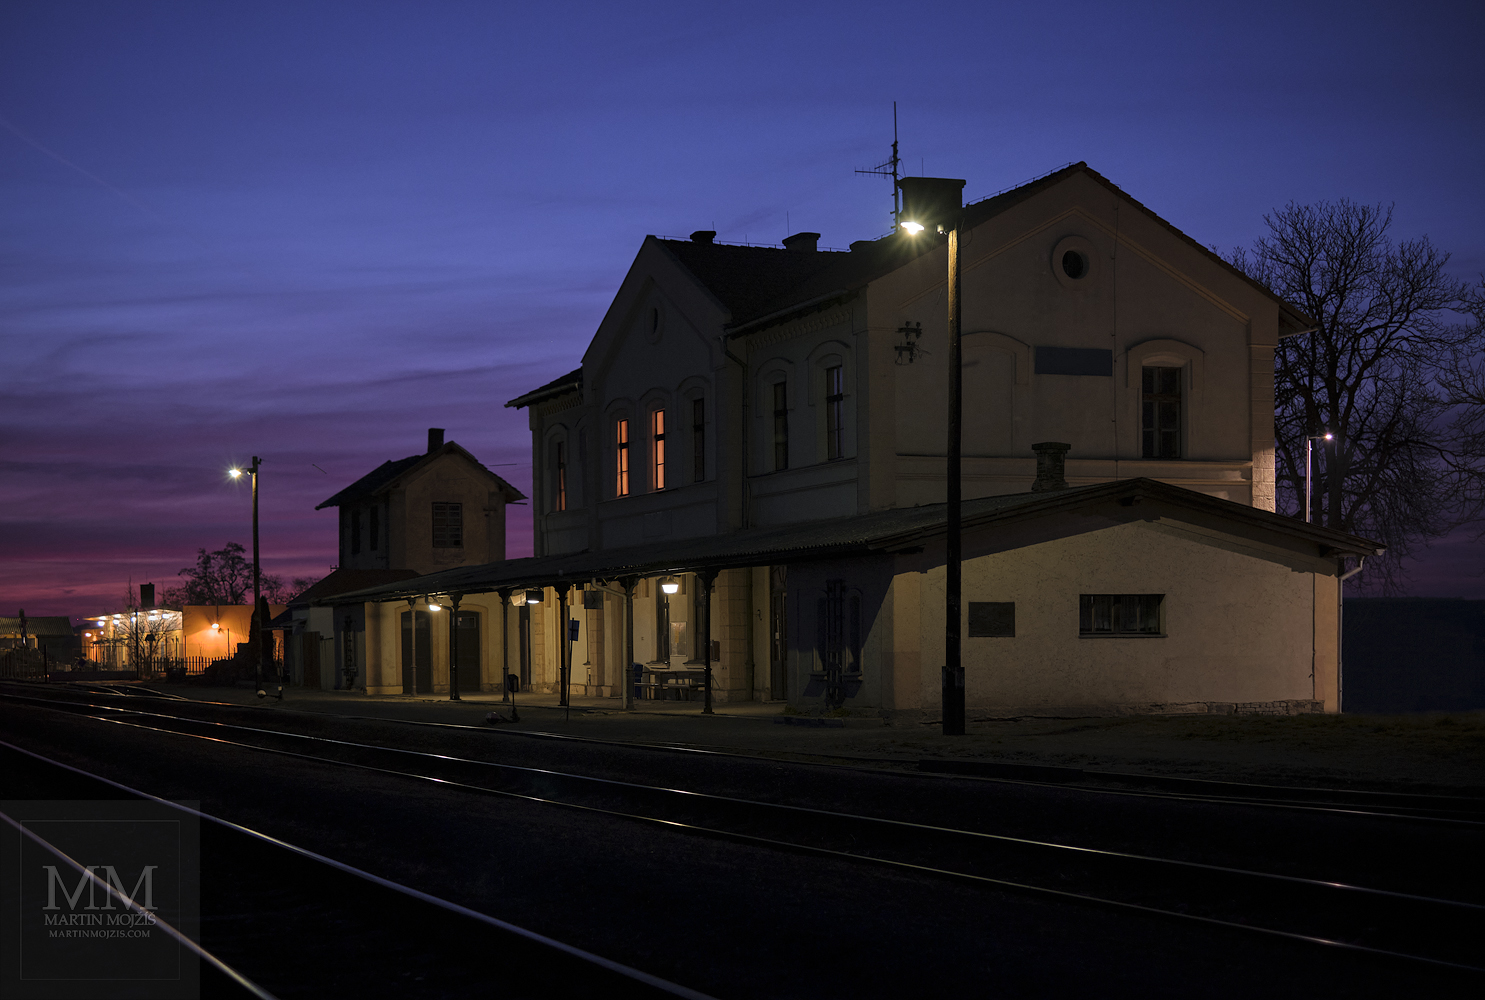 Fine Art photograph of the early evening railway station. Martin Mojzis.